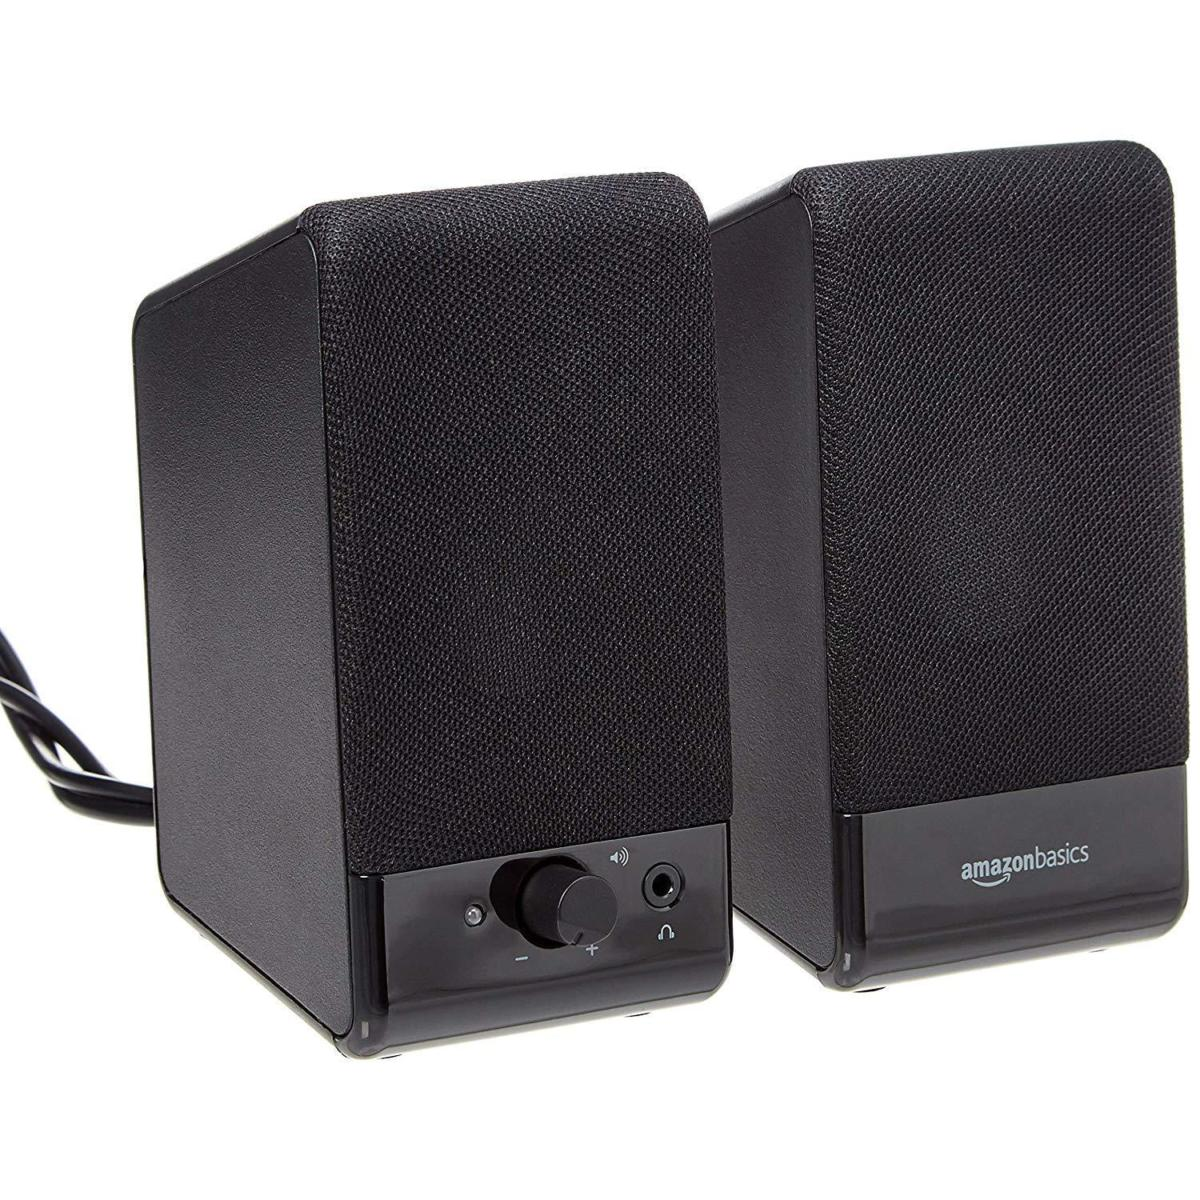 amazonbasics computer speakers usb powered review these budget speakers are a sound savings. Black Bedroom Furniture Sets. Home Design Ideas